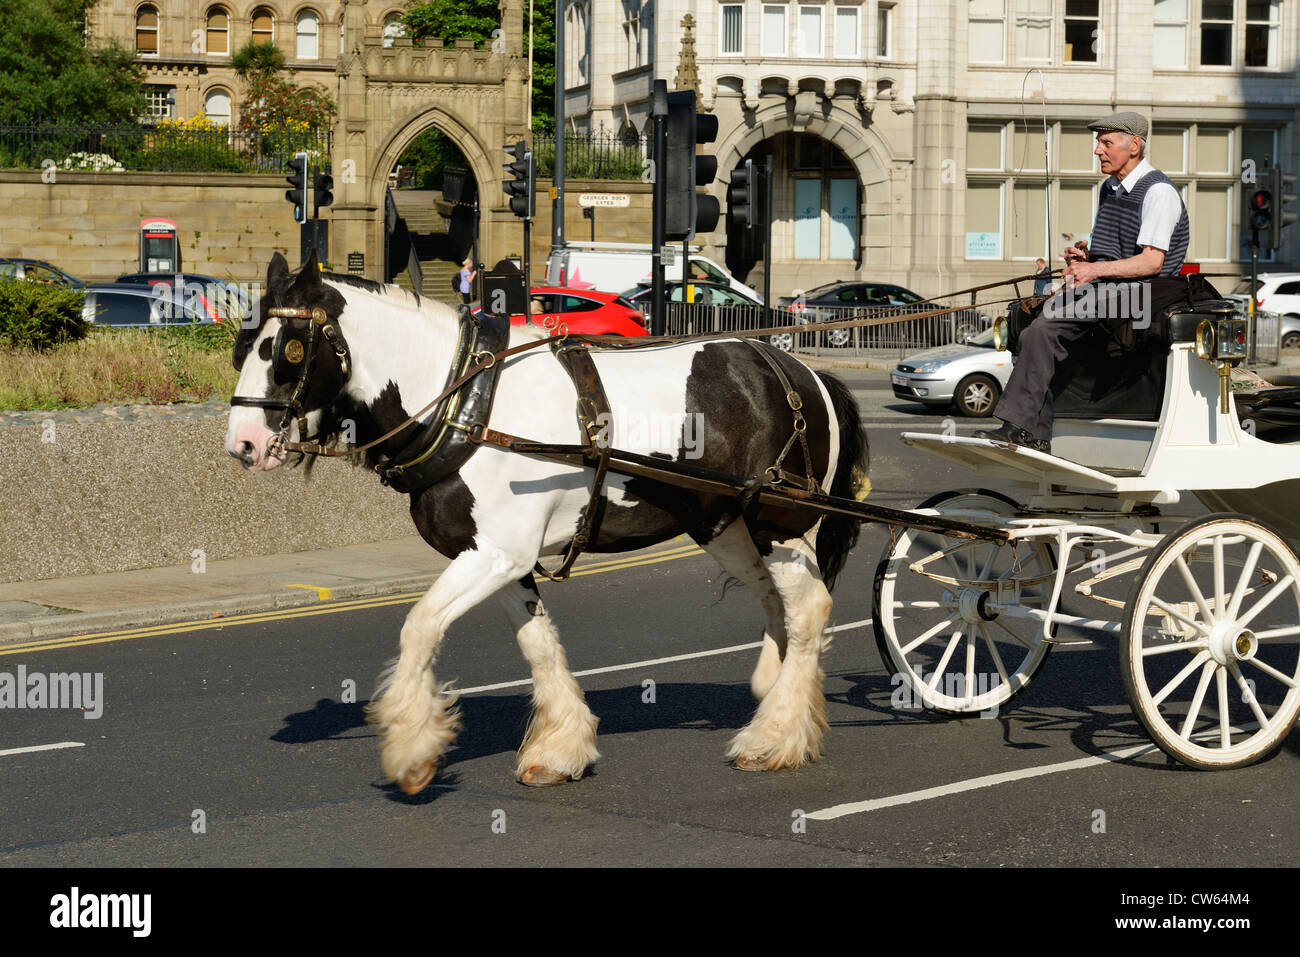 Horse and trap on The Strand in Liverpool city centre - Stock Image